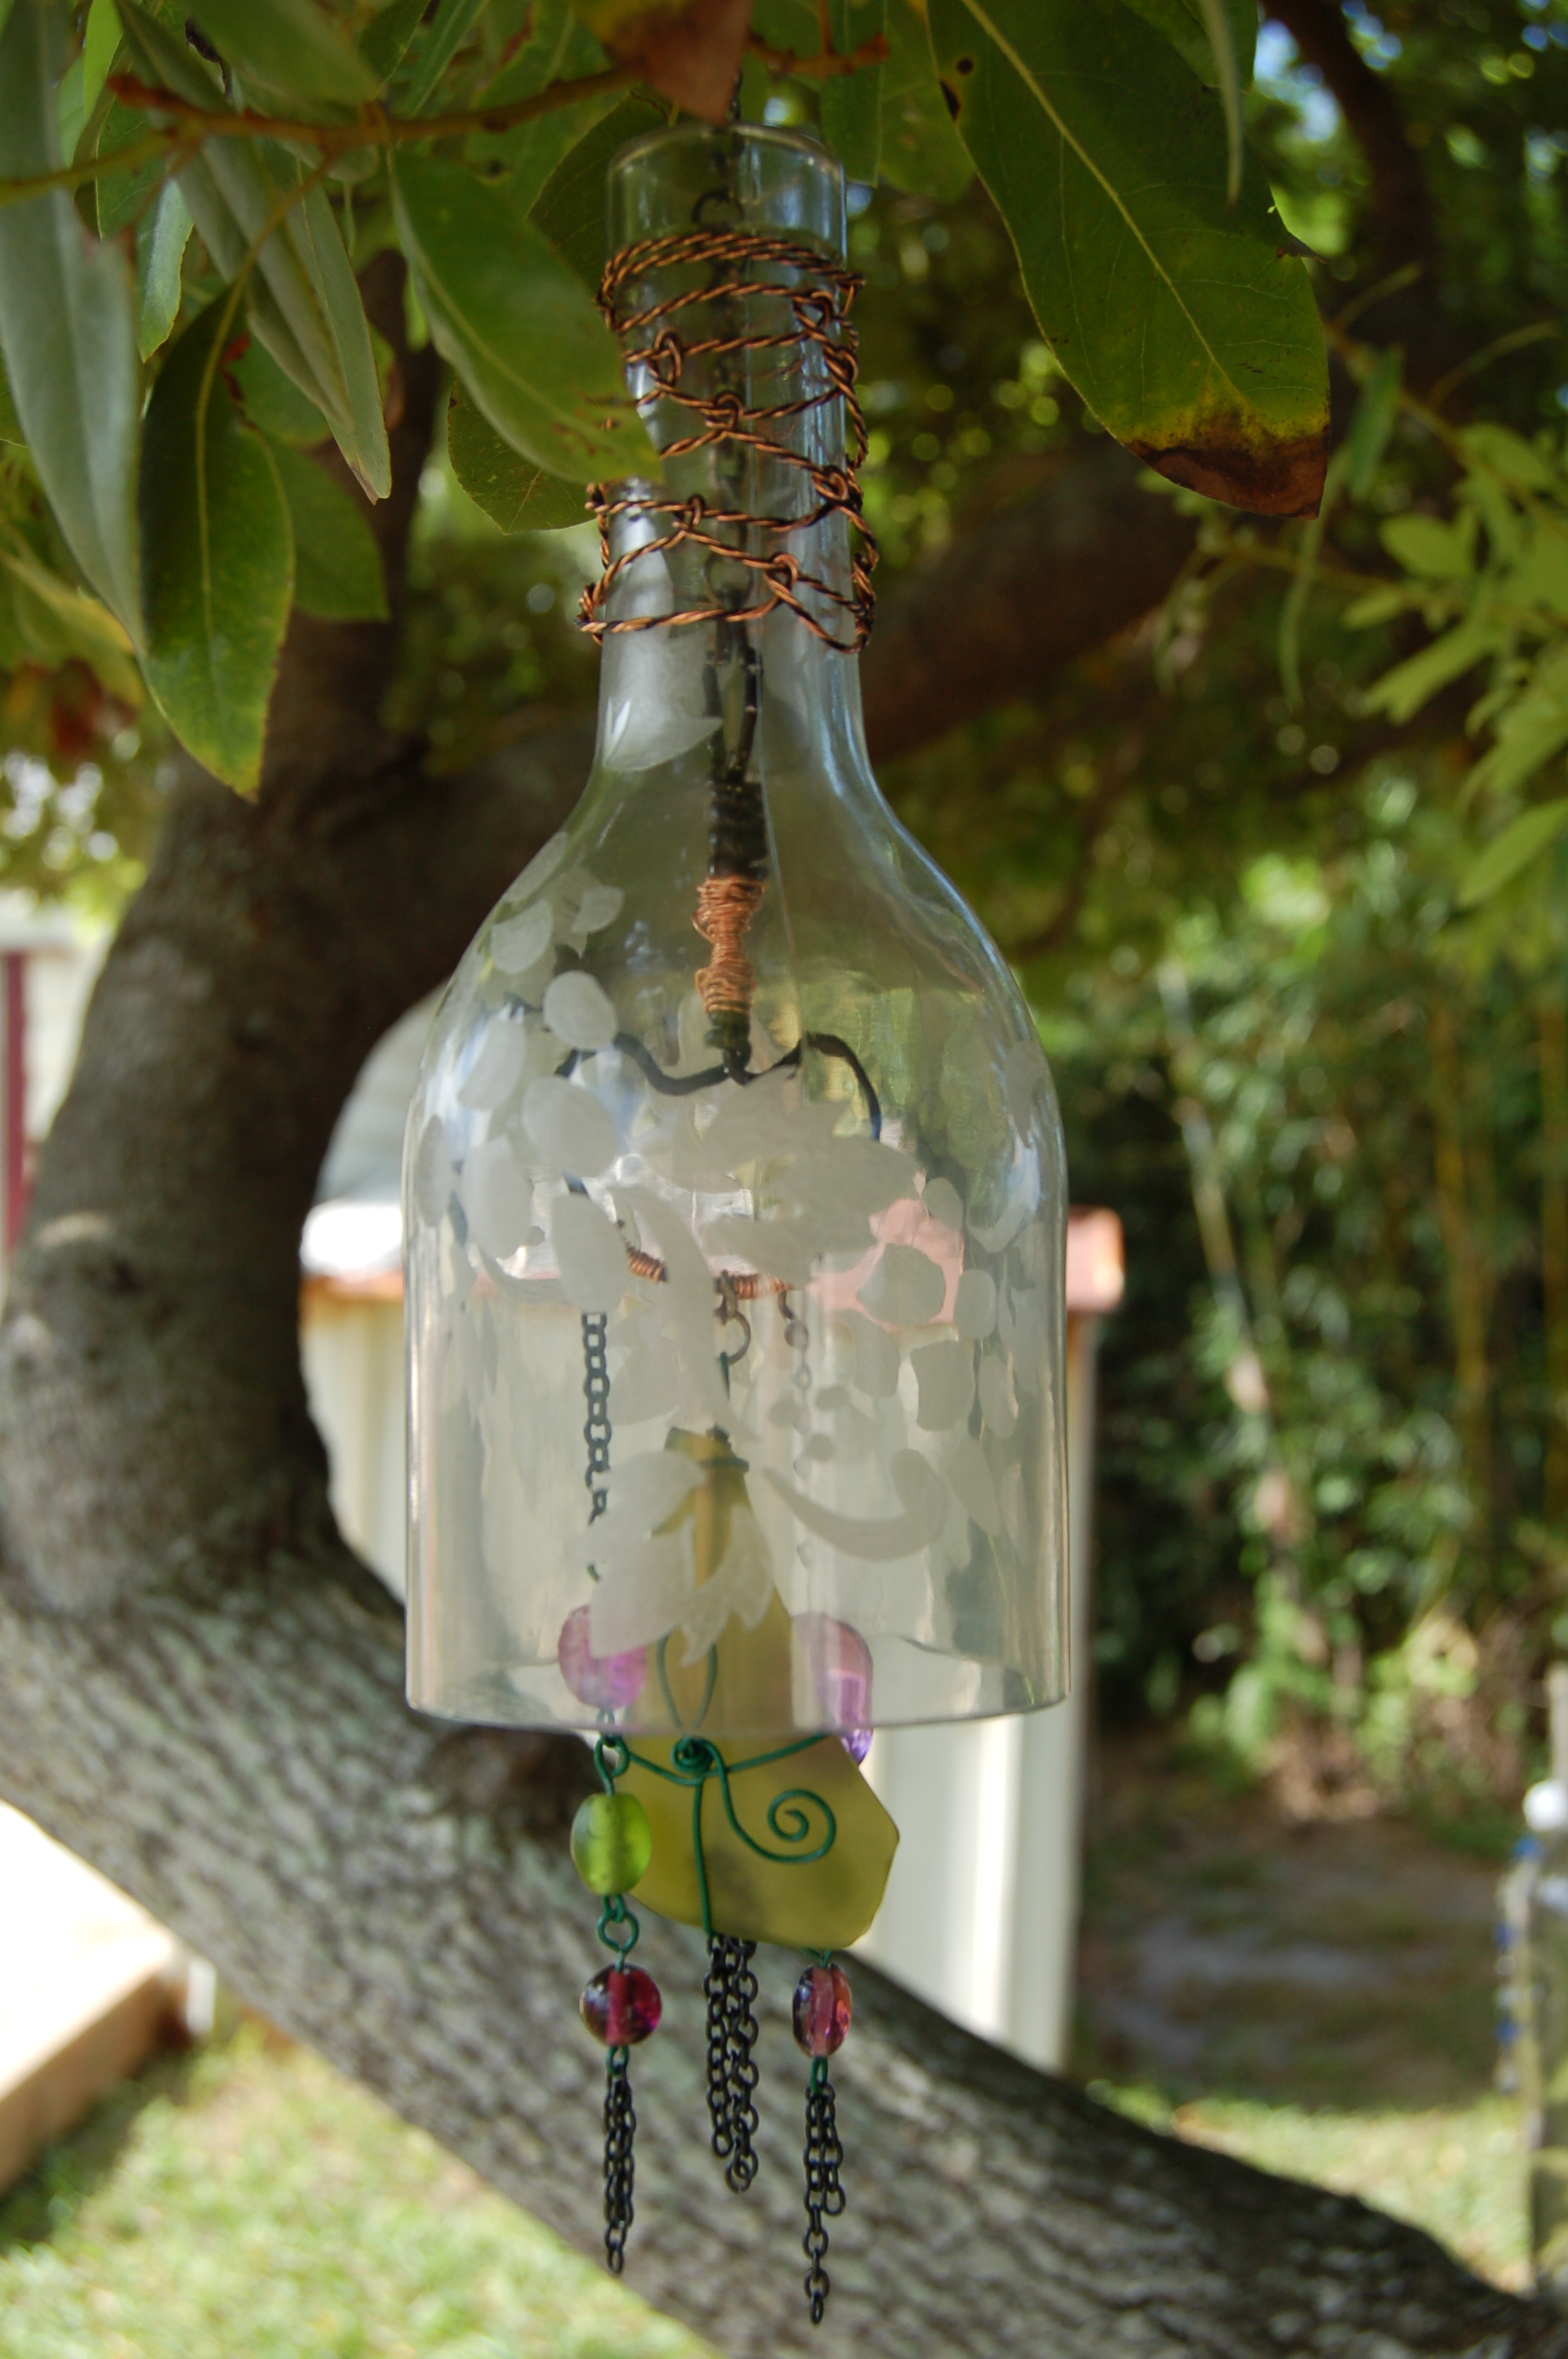 How to Create Your Own Green Retro Wind Chime Out of Recycled Wine